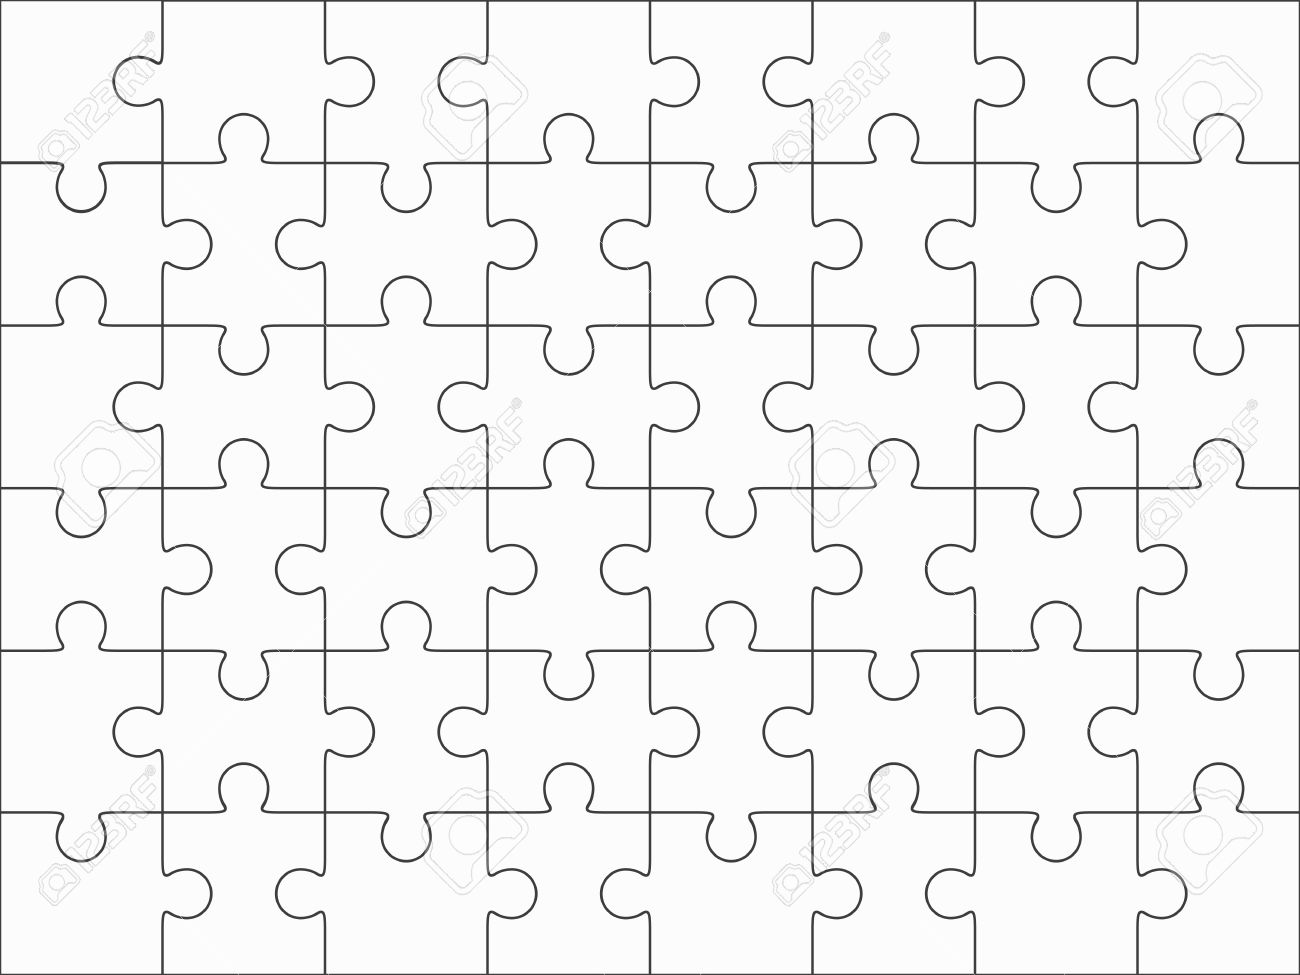 Jigsaw Puzzle Blank Template 6x8 Elements Fourty Eight Pieces Vector Illustration